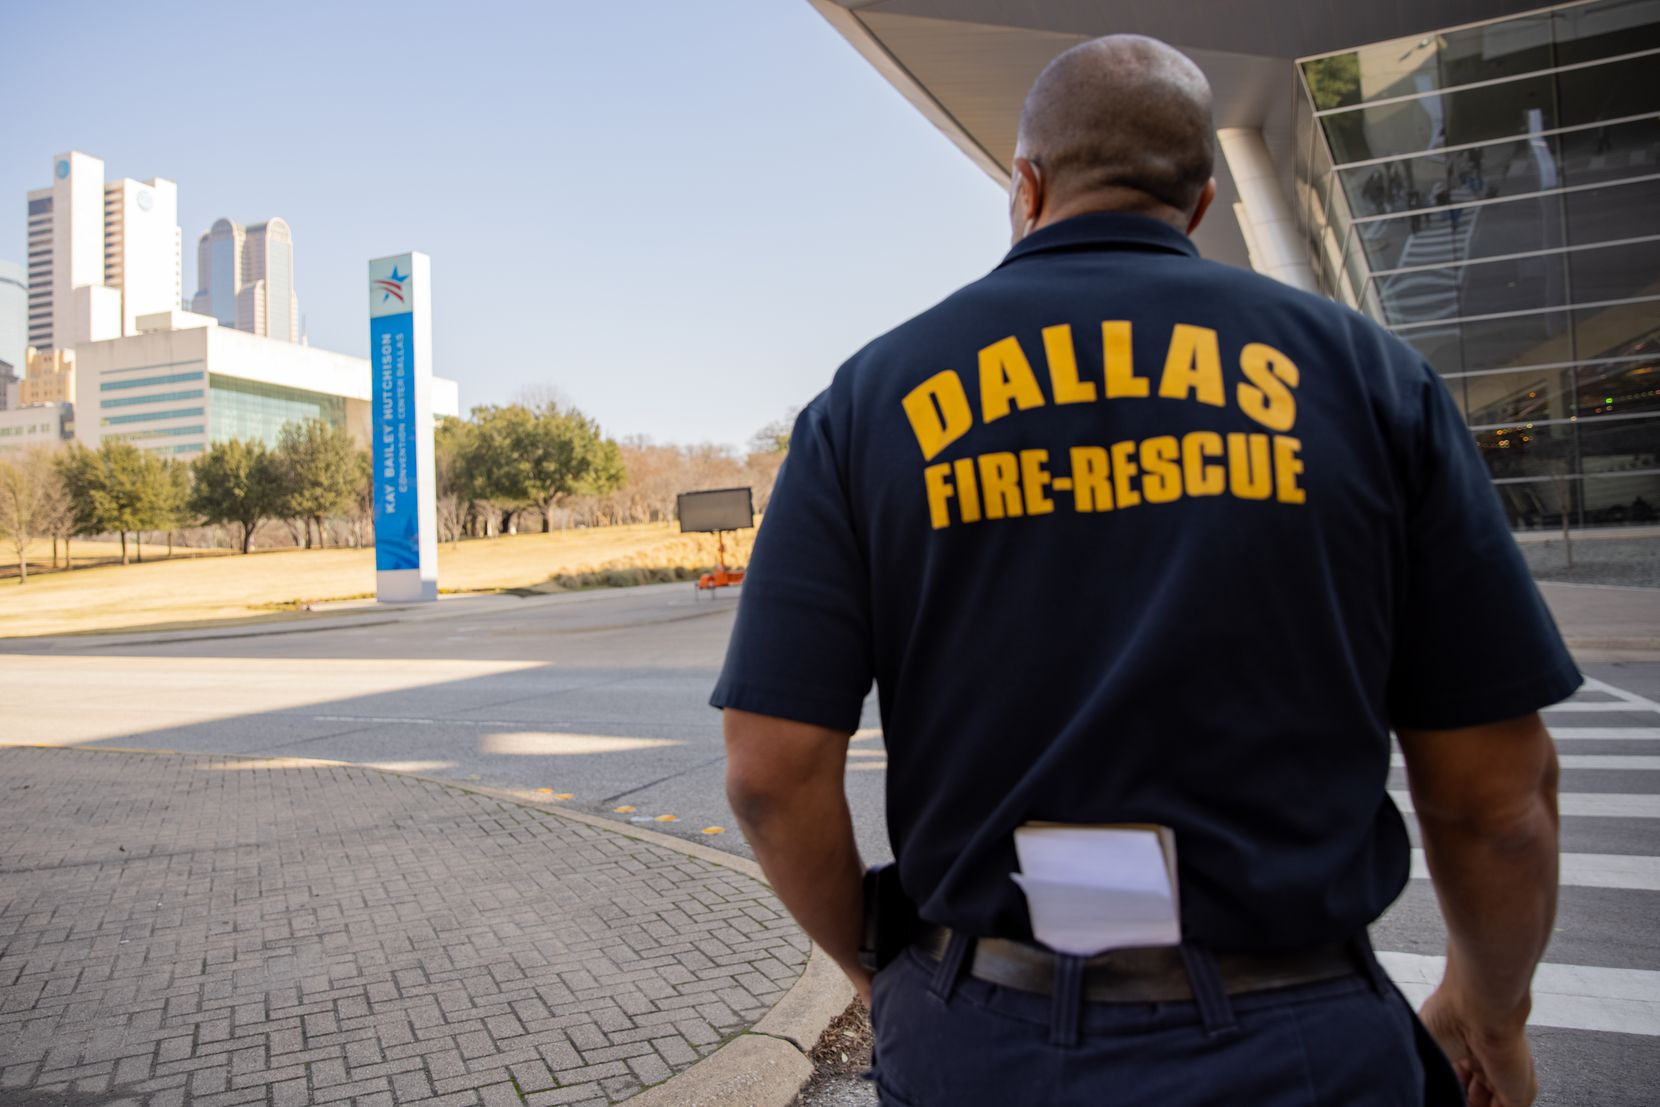 Dallas Fire-Rescue works to prepare the drive-up vaccine clinic at Kay Bailey Hutchison Convention Center in Dallas on Wednesday, Jan. 27, 2021. (Juan Figueroa/ The Dallas Morning News)